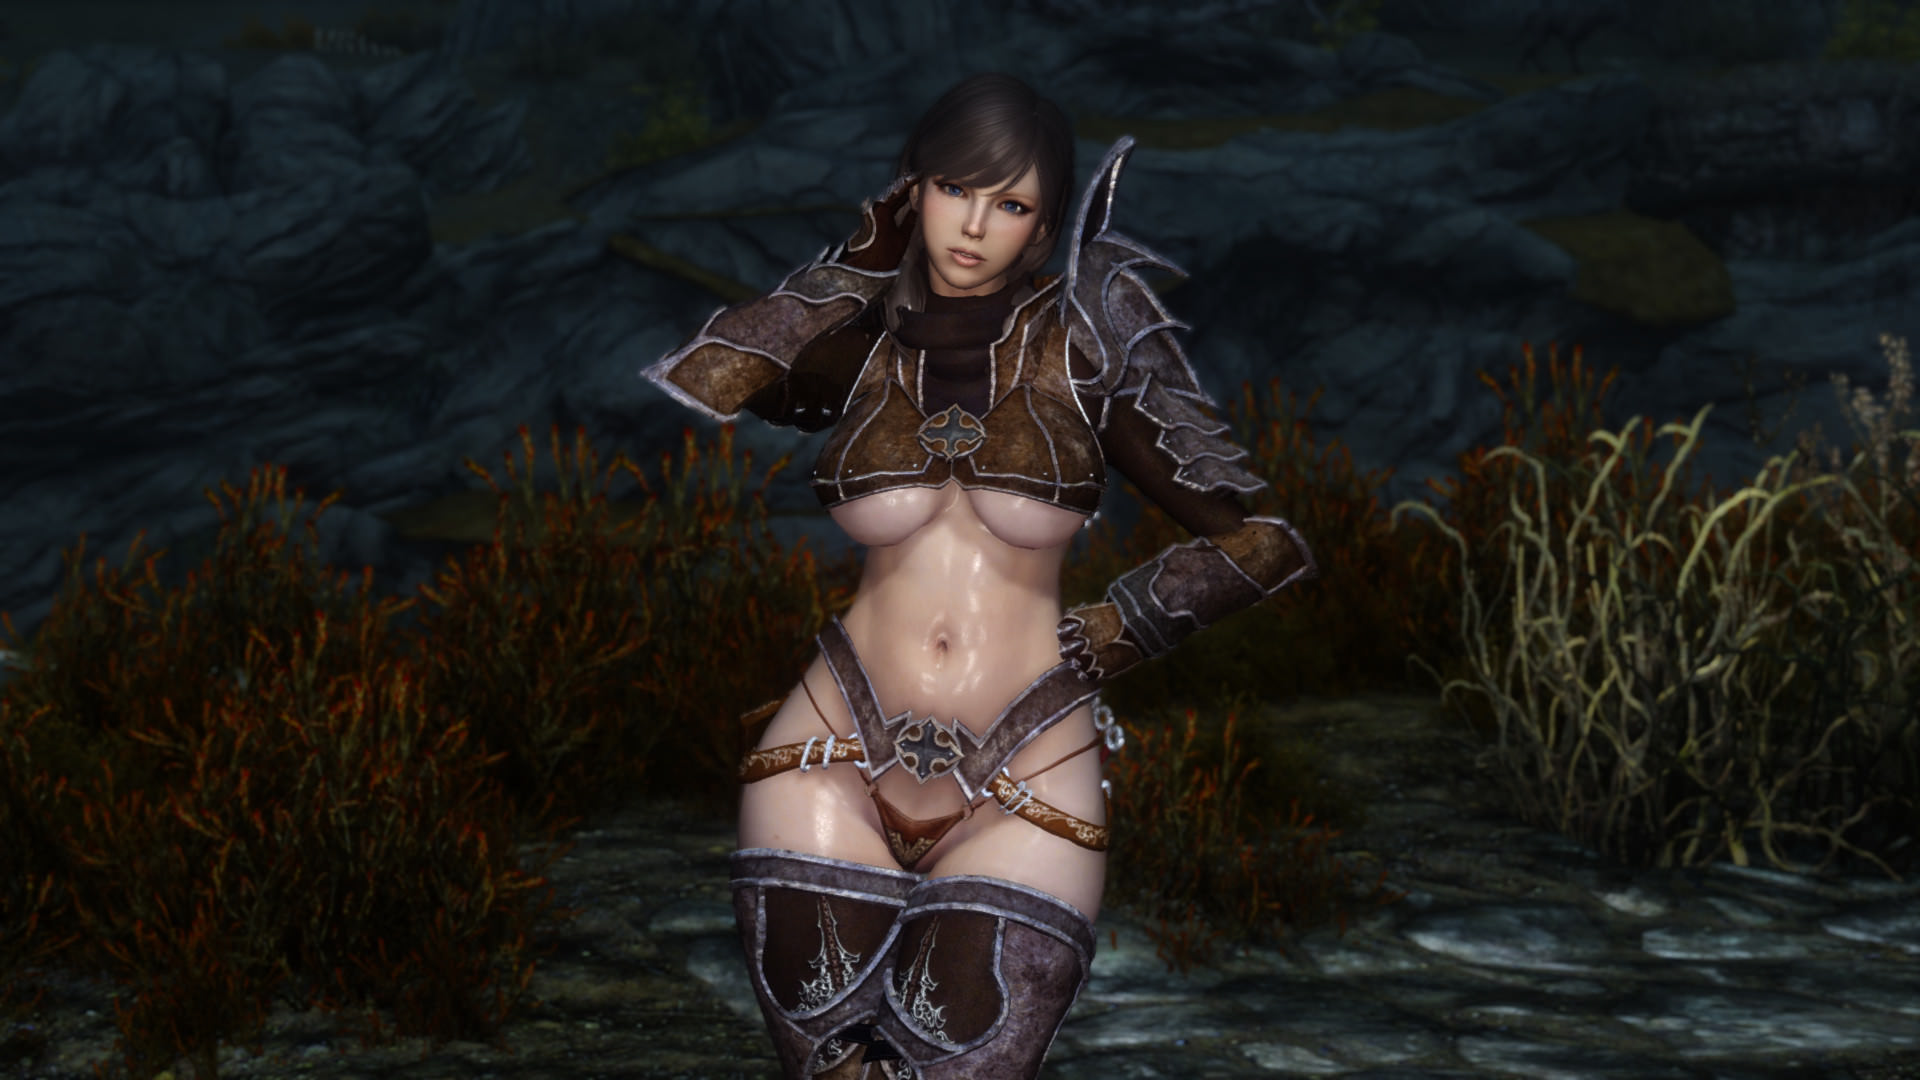 Demon hunter boobs fucking boobs